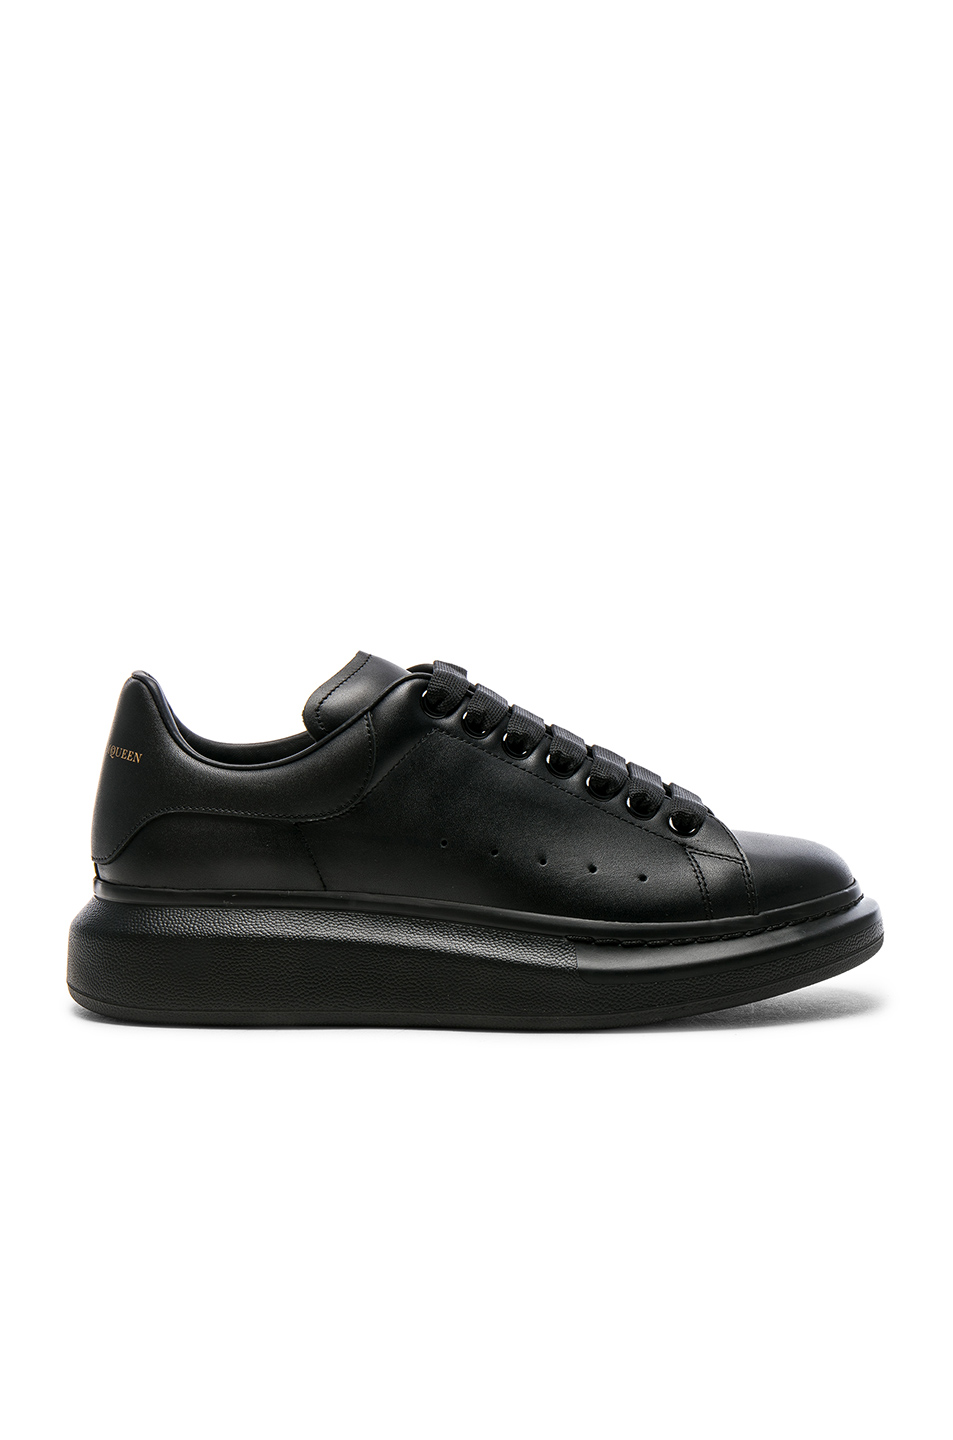 e28f2b1c43fc Buy Original Alexander McQueen Leather Platform Sneakers at ...